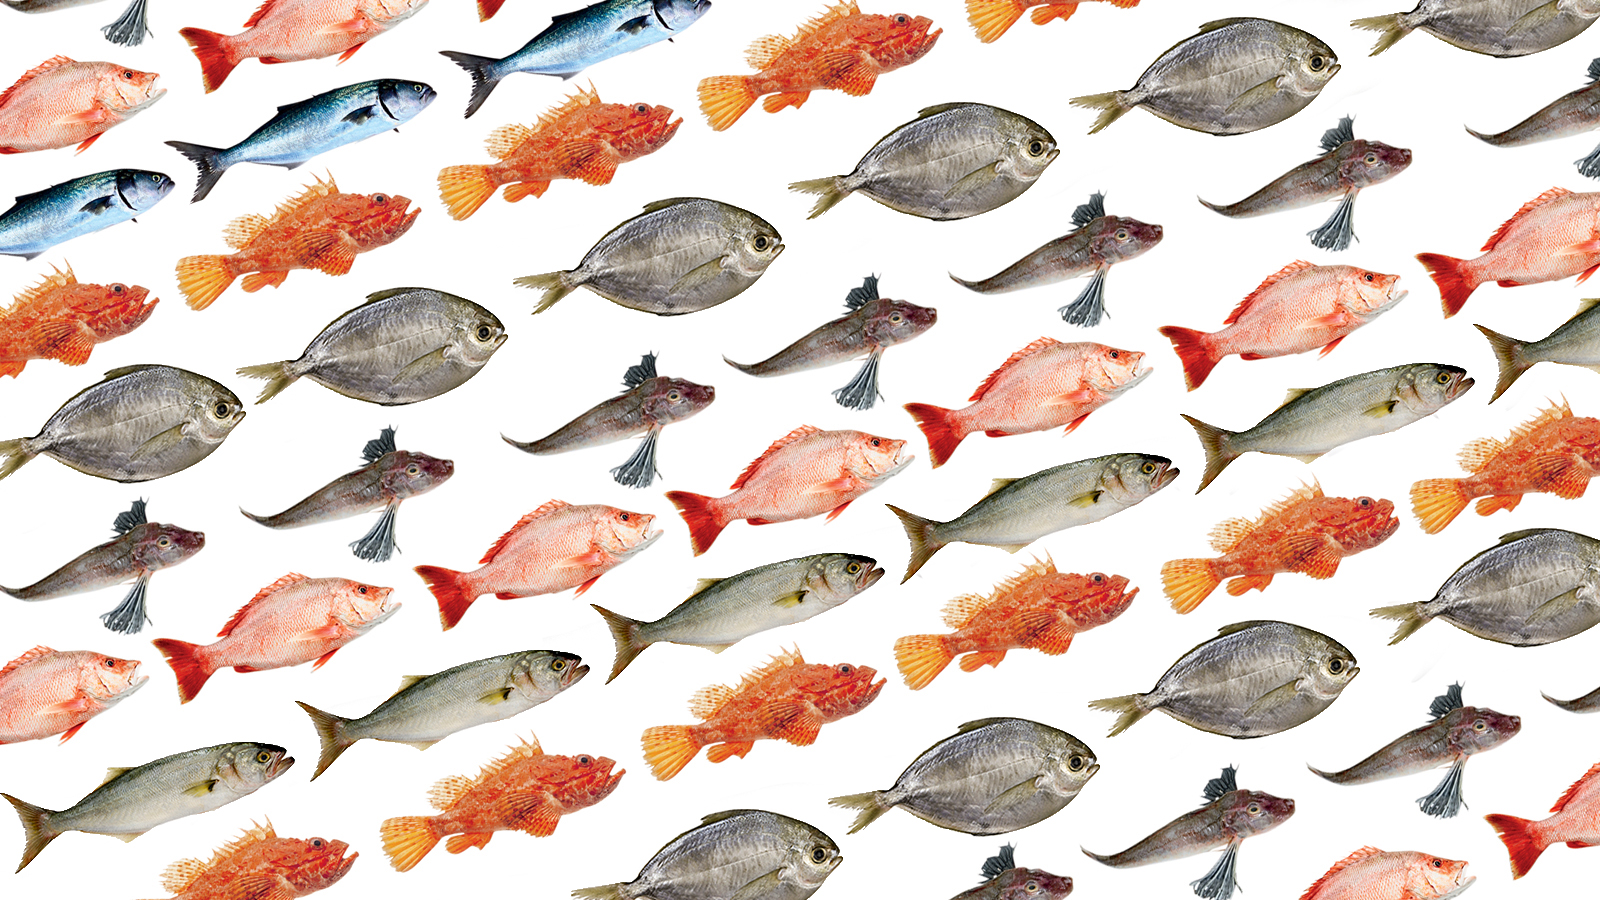 Here's How the World Could Save its Wild Fish Populations